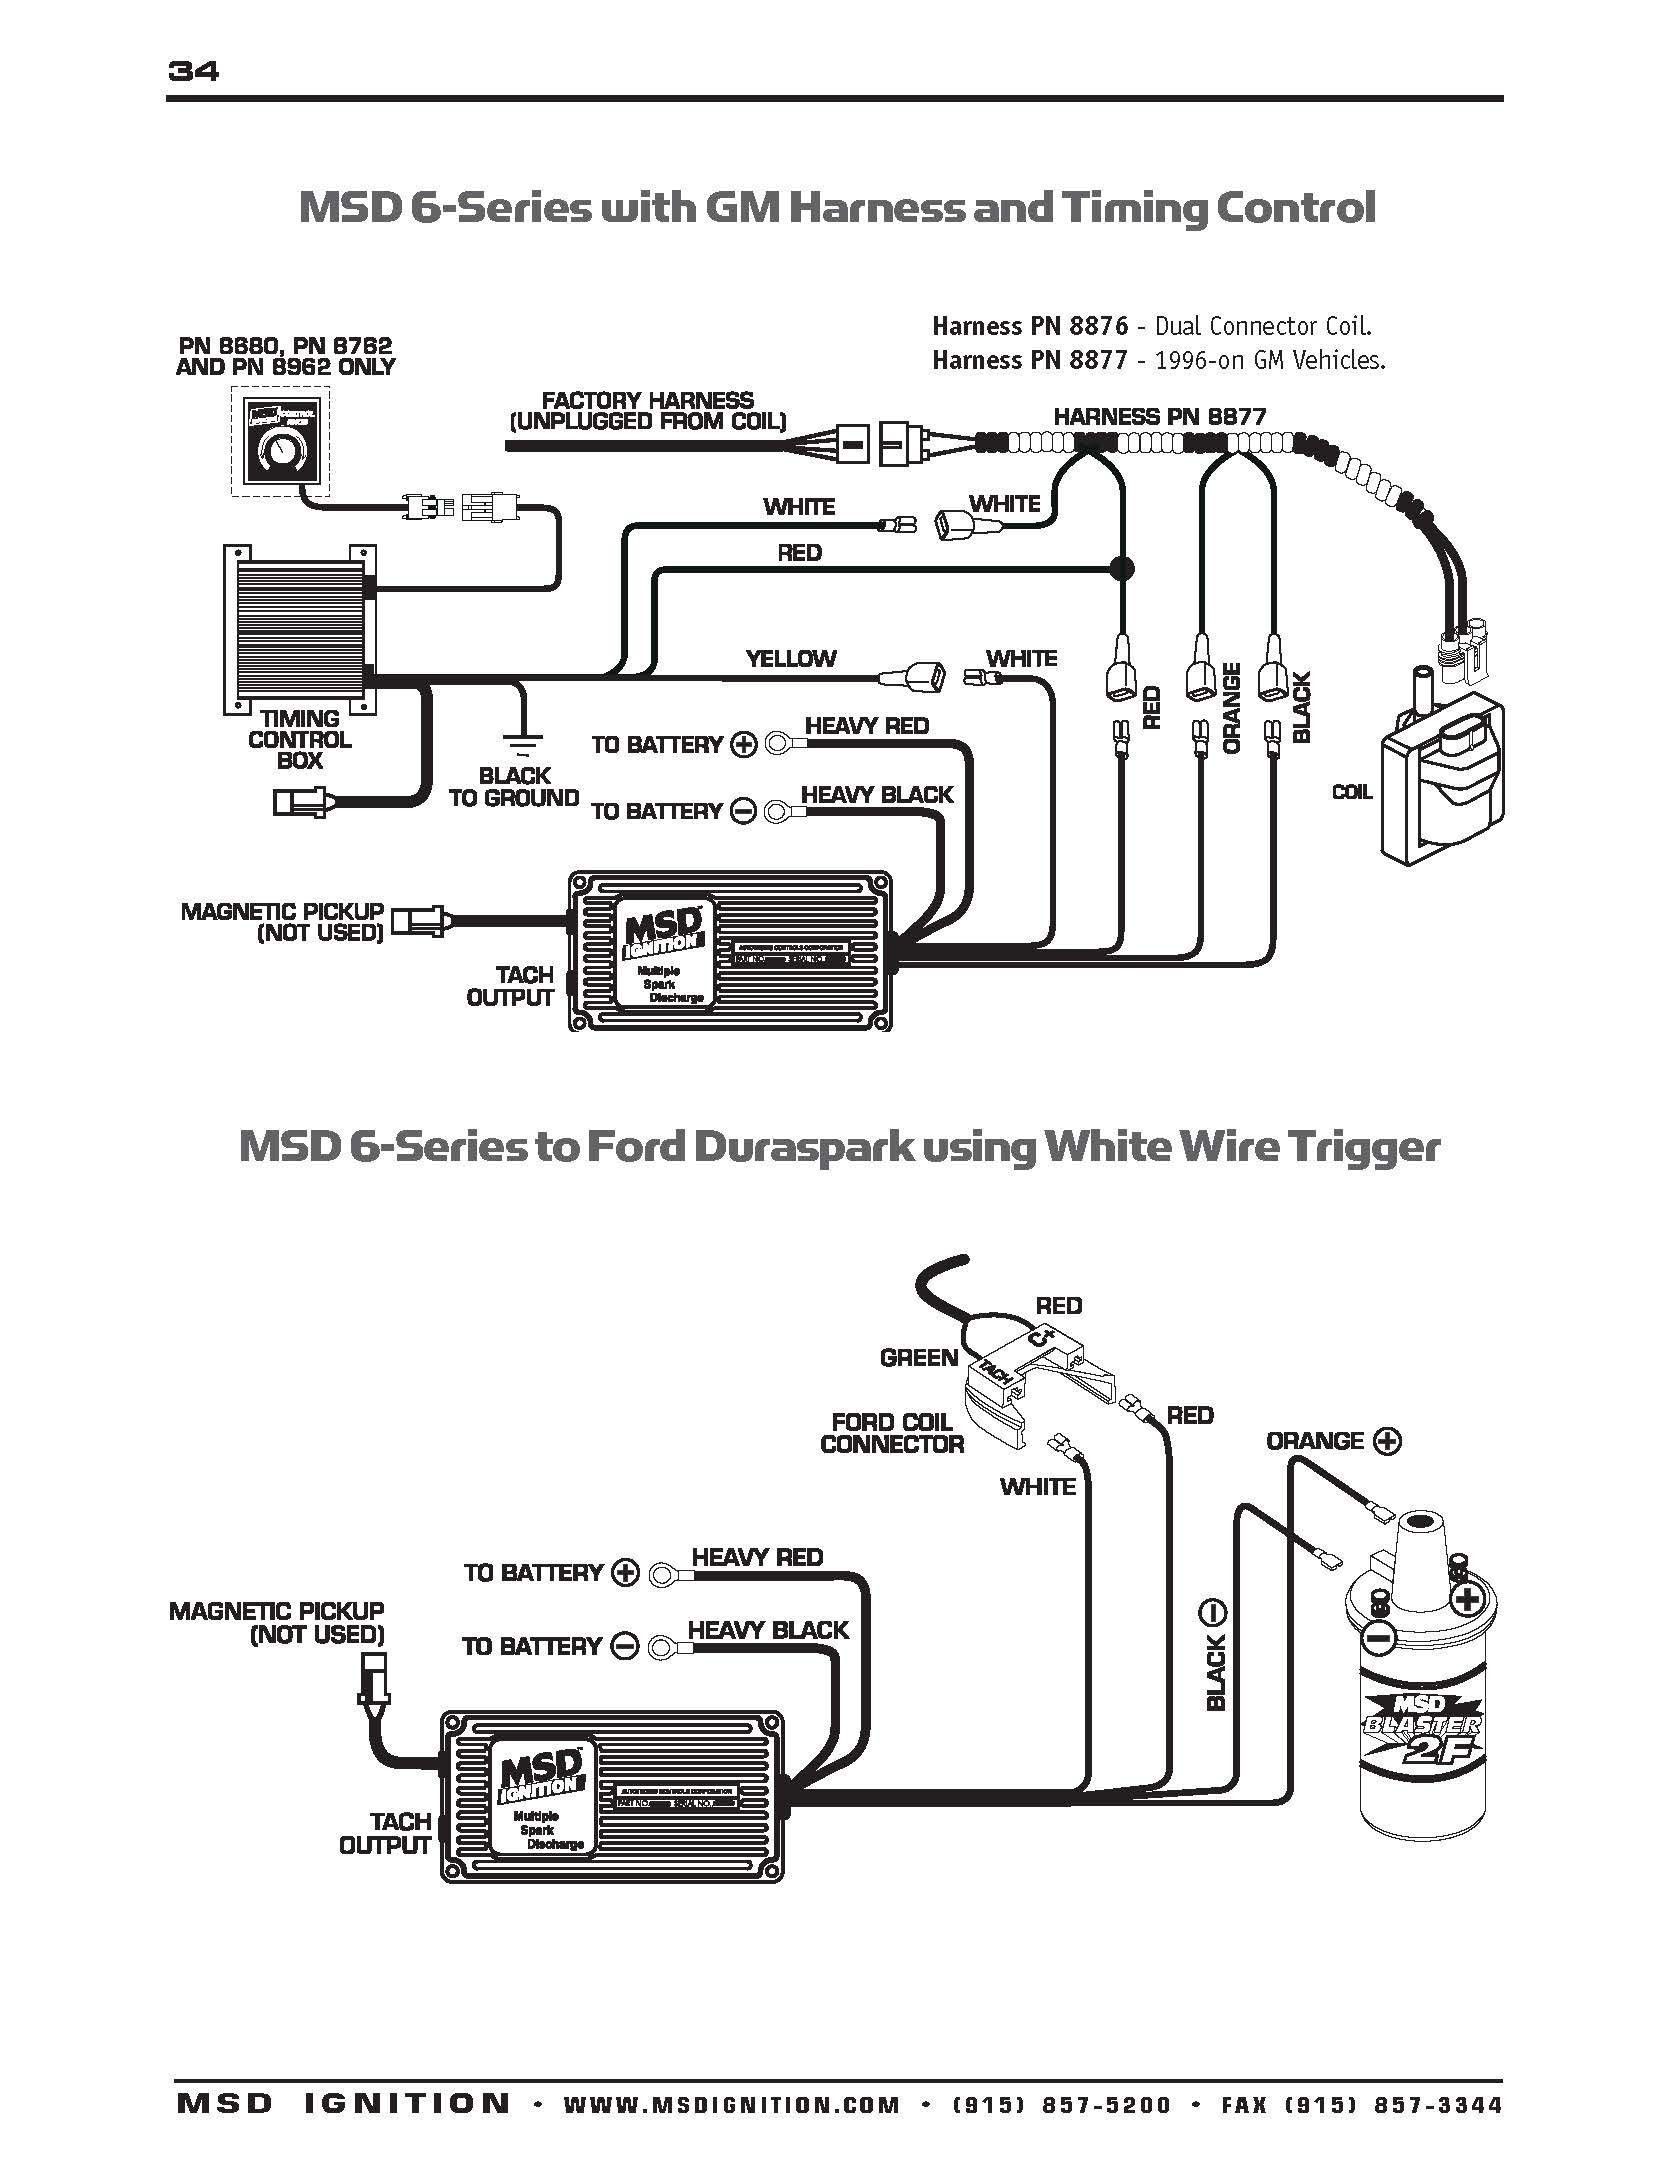 [QMVU_8575]  Ford Hei Distributor Wiring Diagram Fuse Box Location In A 2013 Ford Focus  Youtube - auto-fusebox.swichw.the-rocks.it | Ford Hei Wiring Diagram |  | Bege Wiring Diagram Source Full Edition